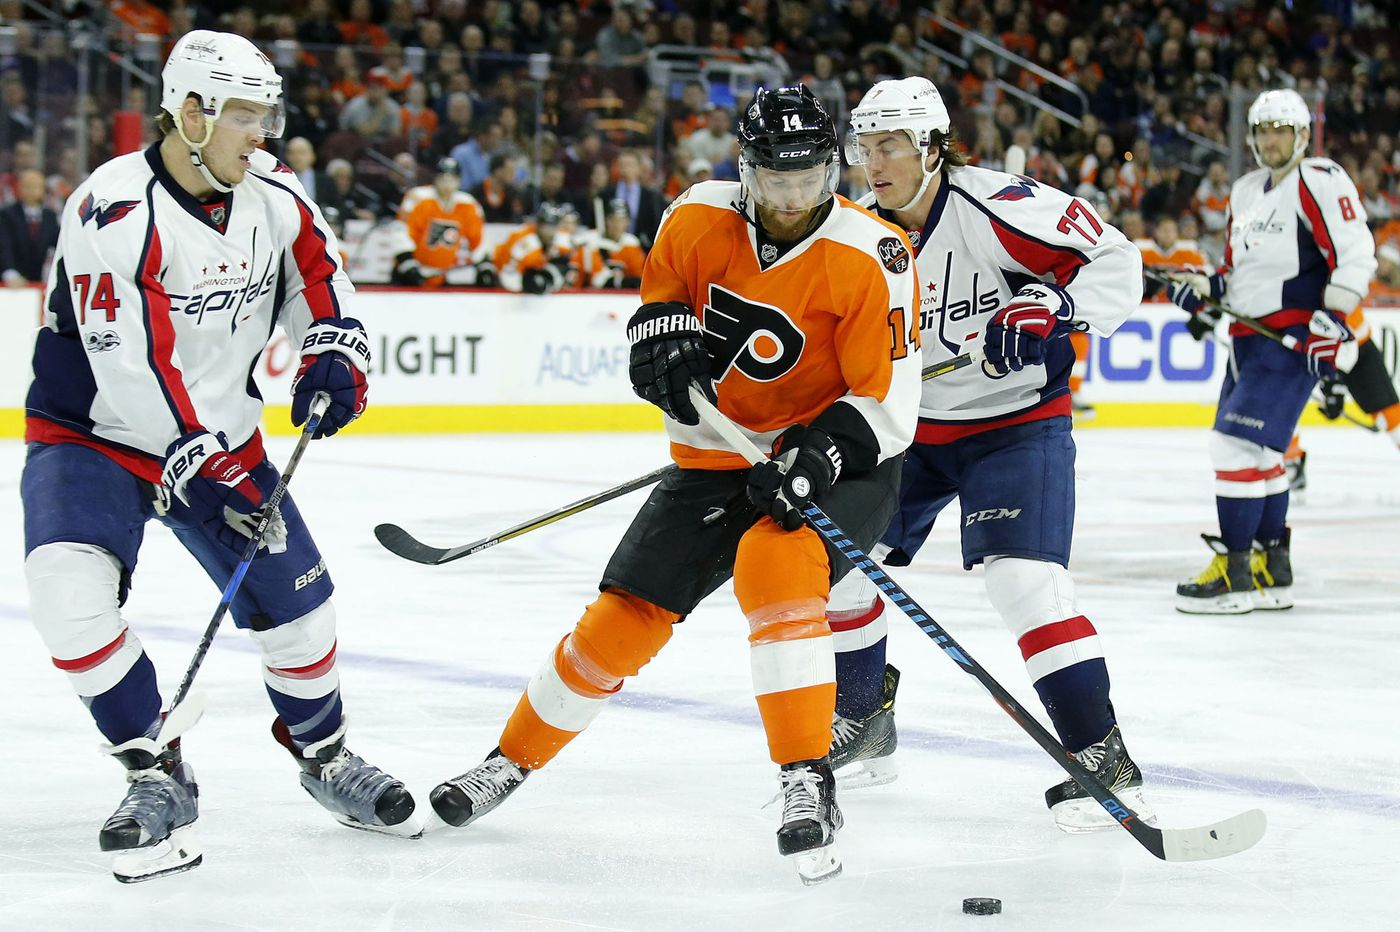 Flyers, Ron Hextall can learn from Capitals' success in Stanley Cup Finals win | Sam Carchidi